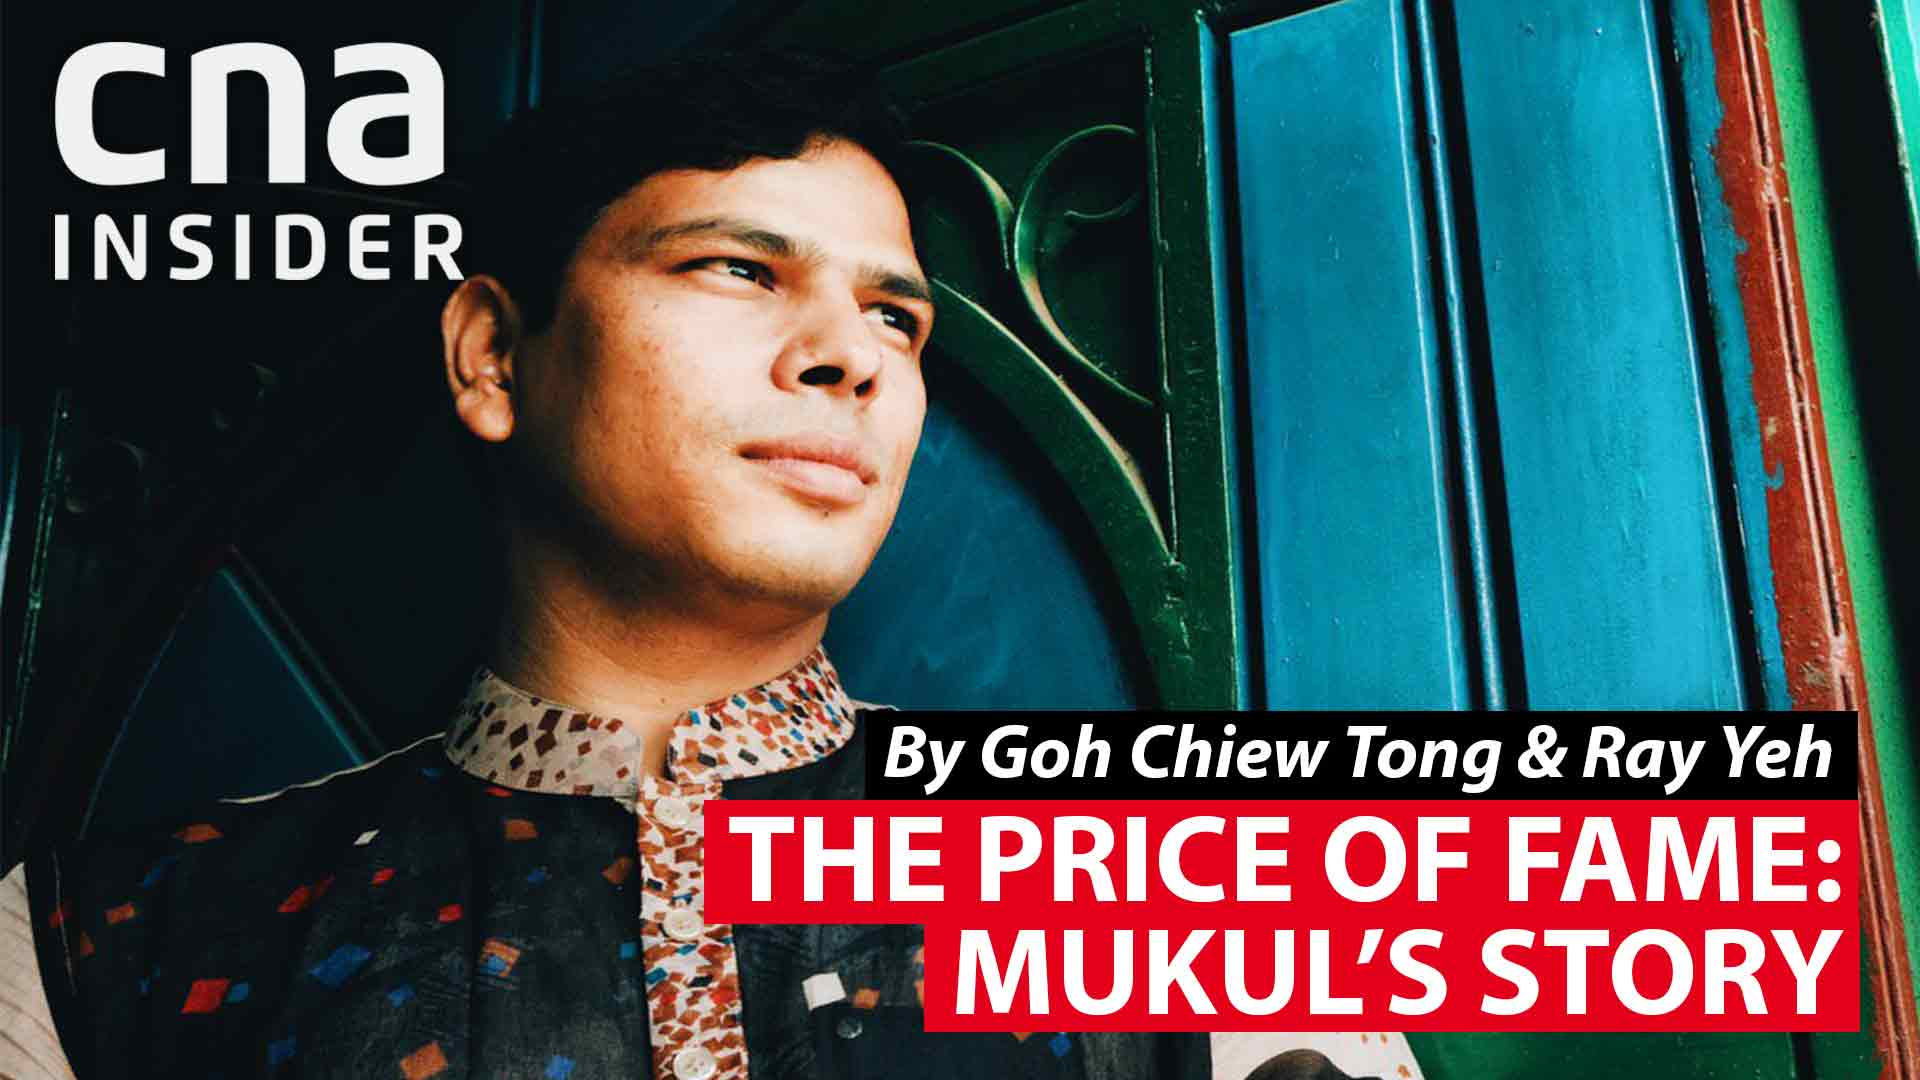 The Price Of Fame: Mukul's Story